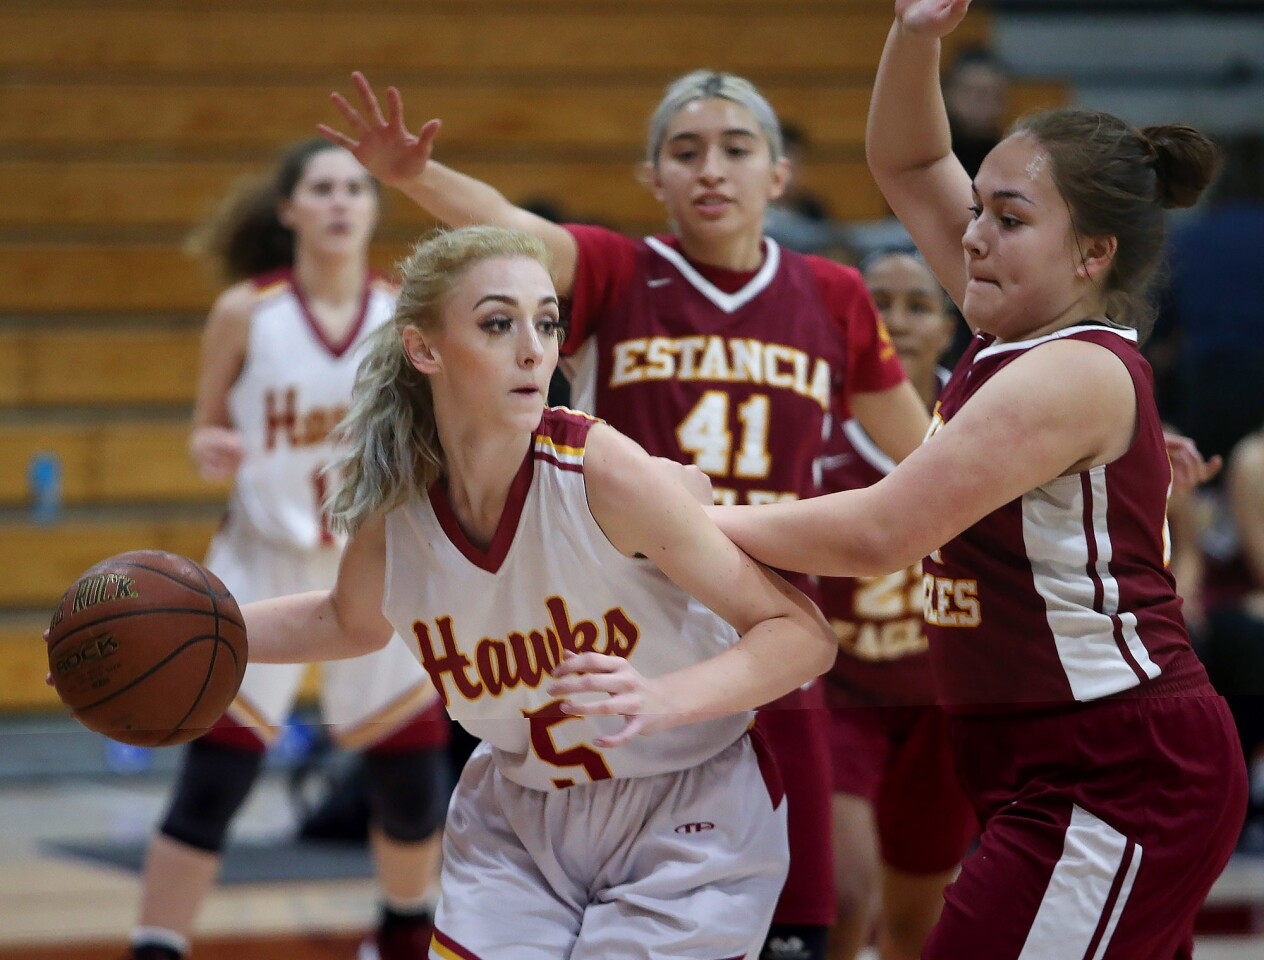 Photo Gallery: Estancia vs. Ocean View in girls' basketball